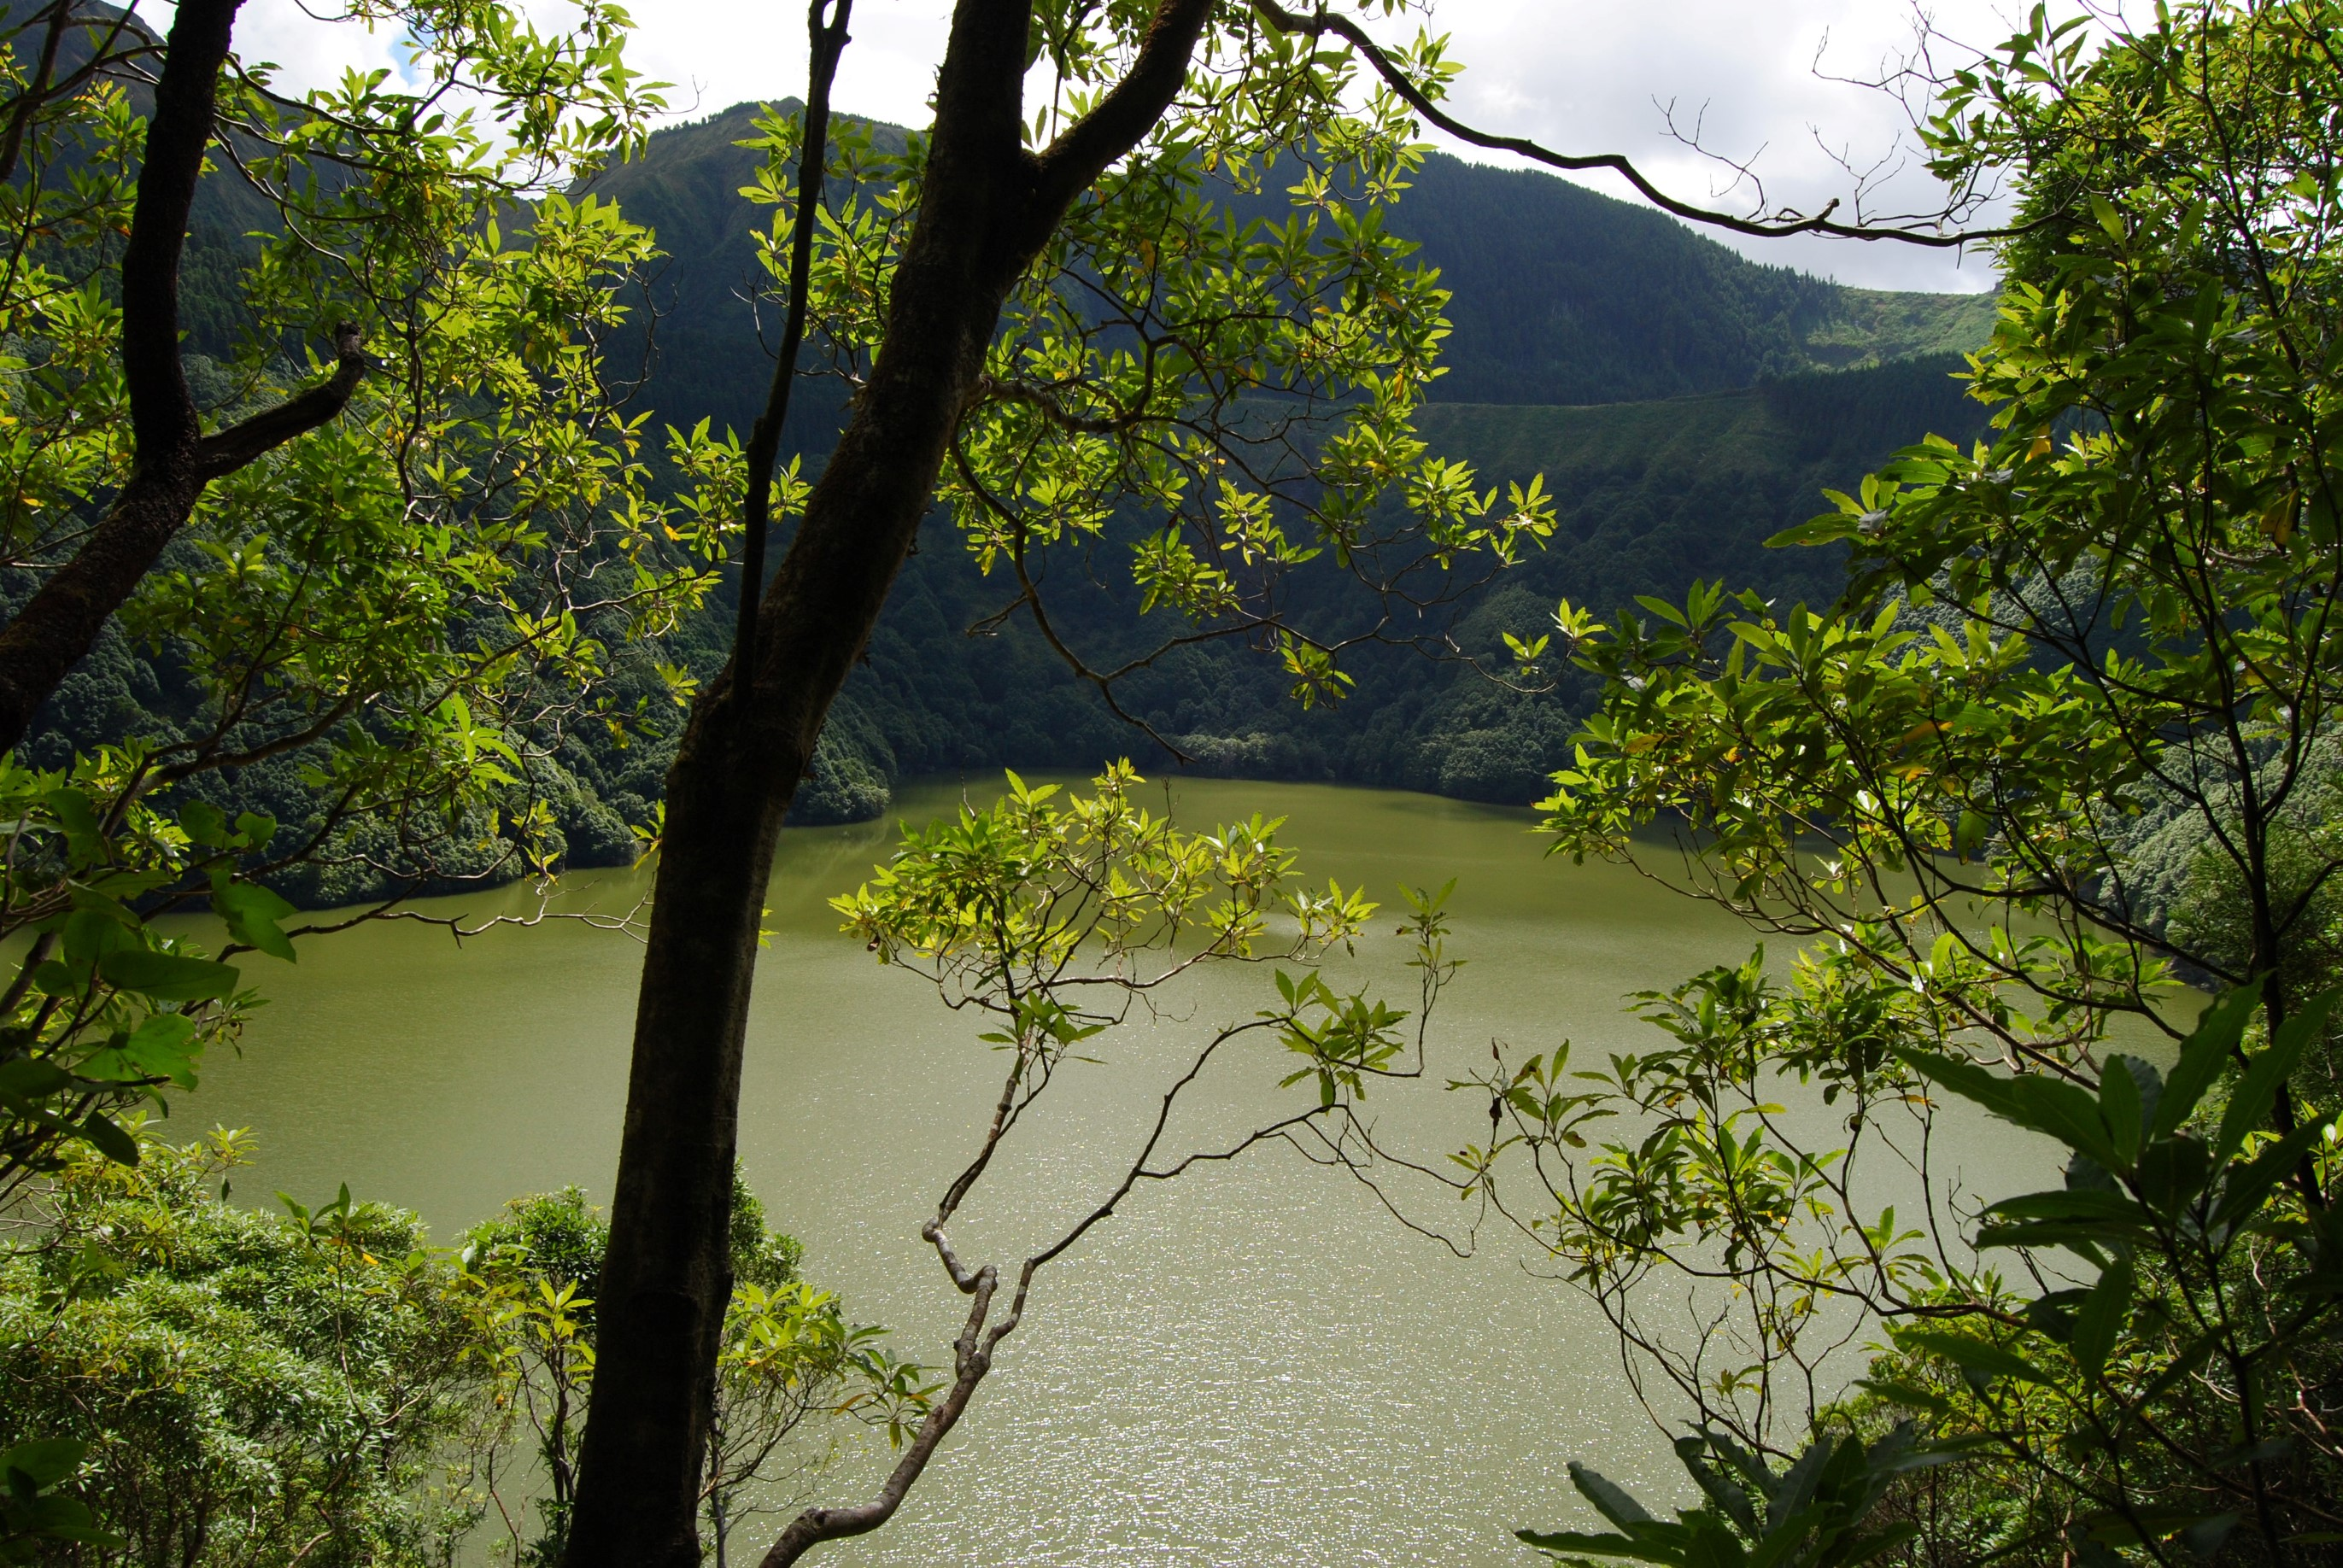 At the bottom of São Tiago Lake